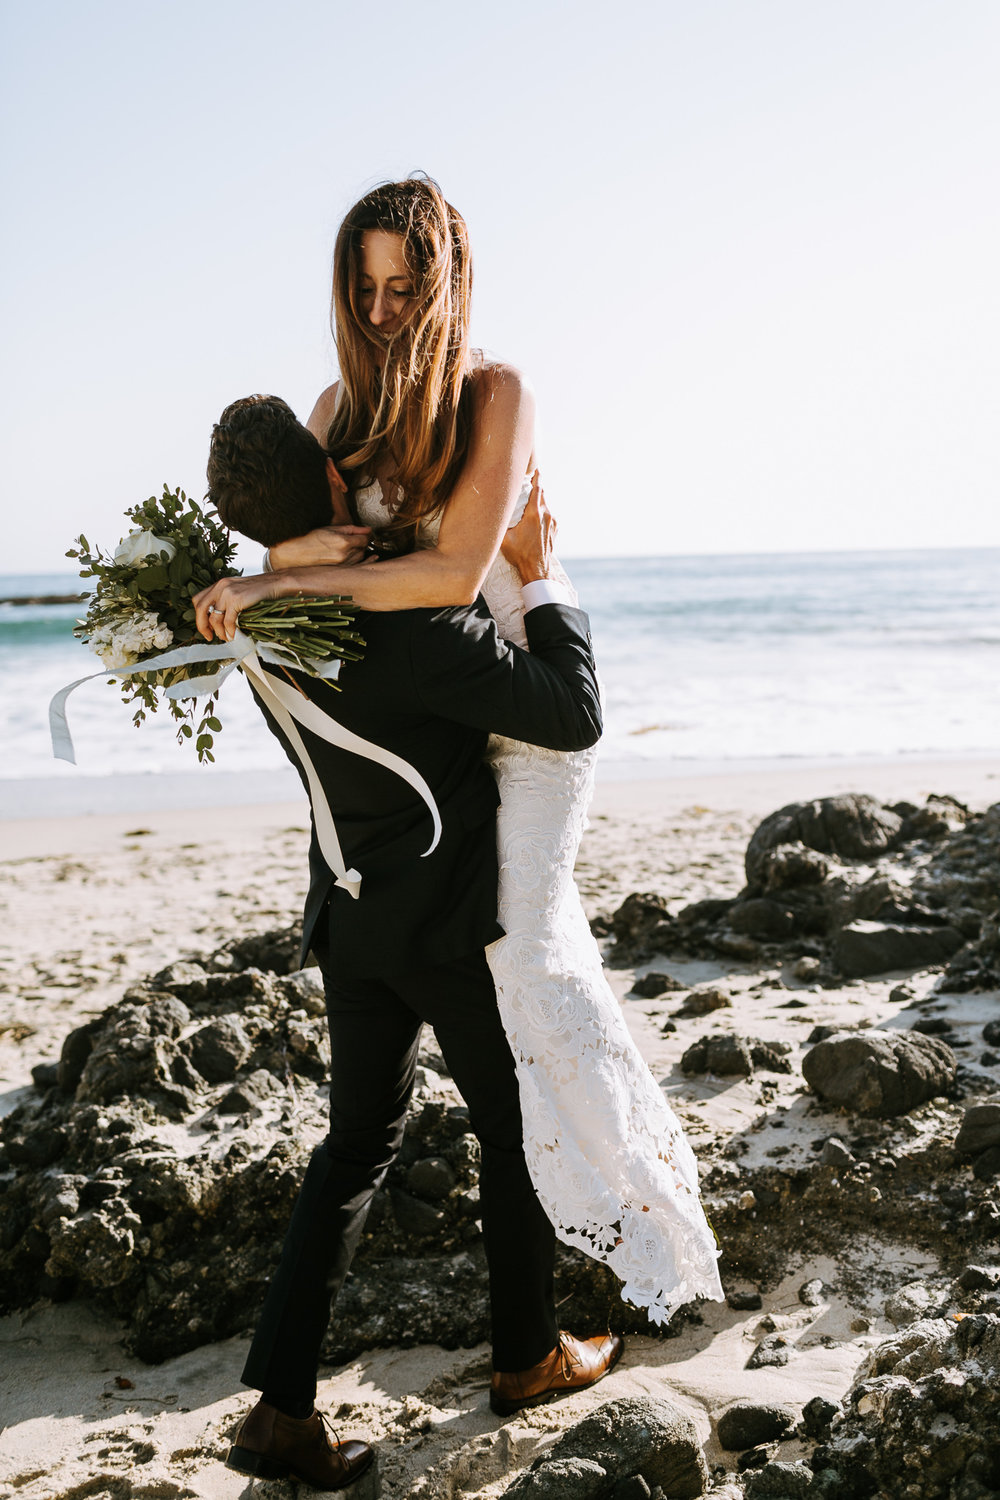 LagunaBeach-WeddingPhotographer-42.jpg